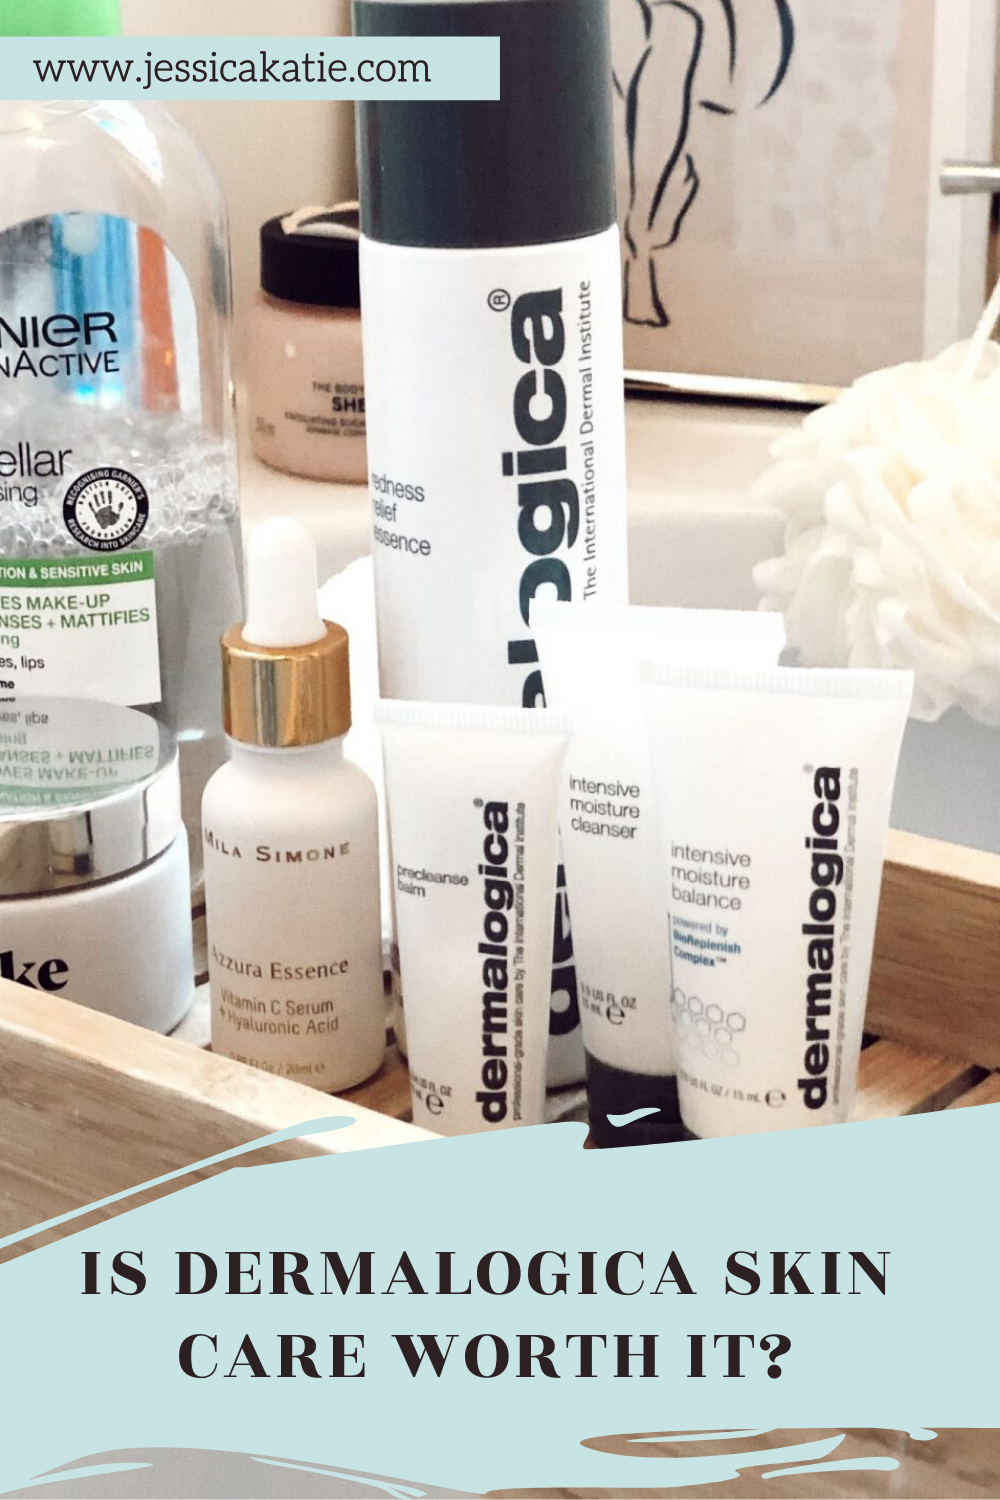 A review of my favourite dermalogica skincare products to